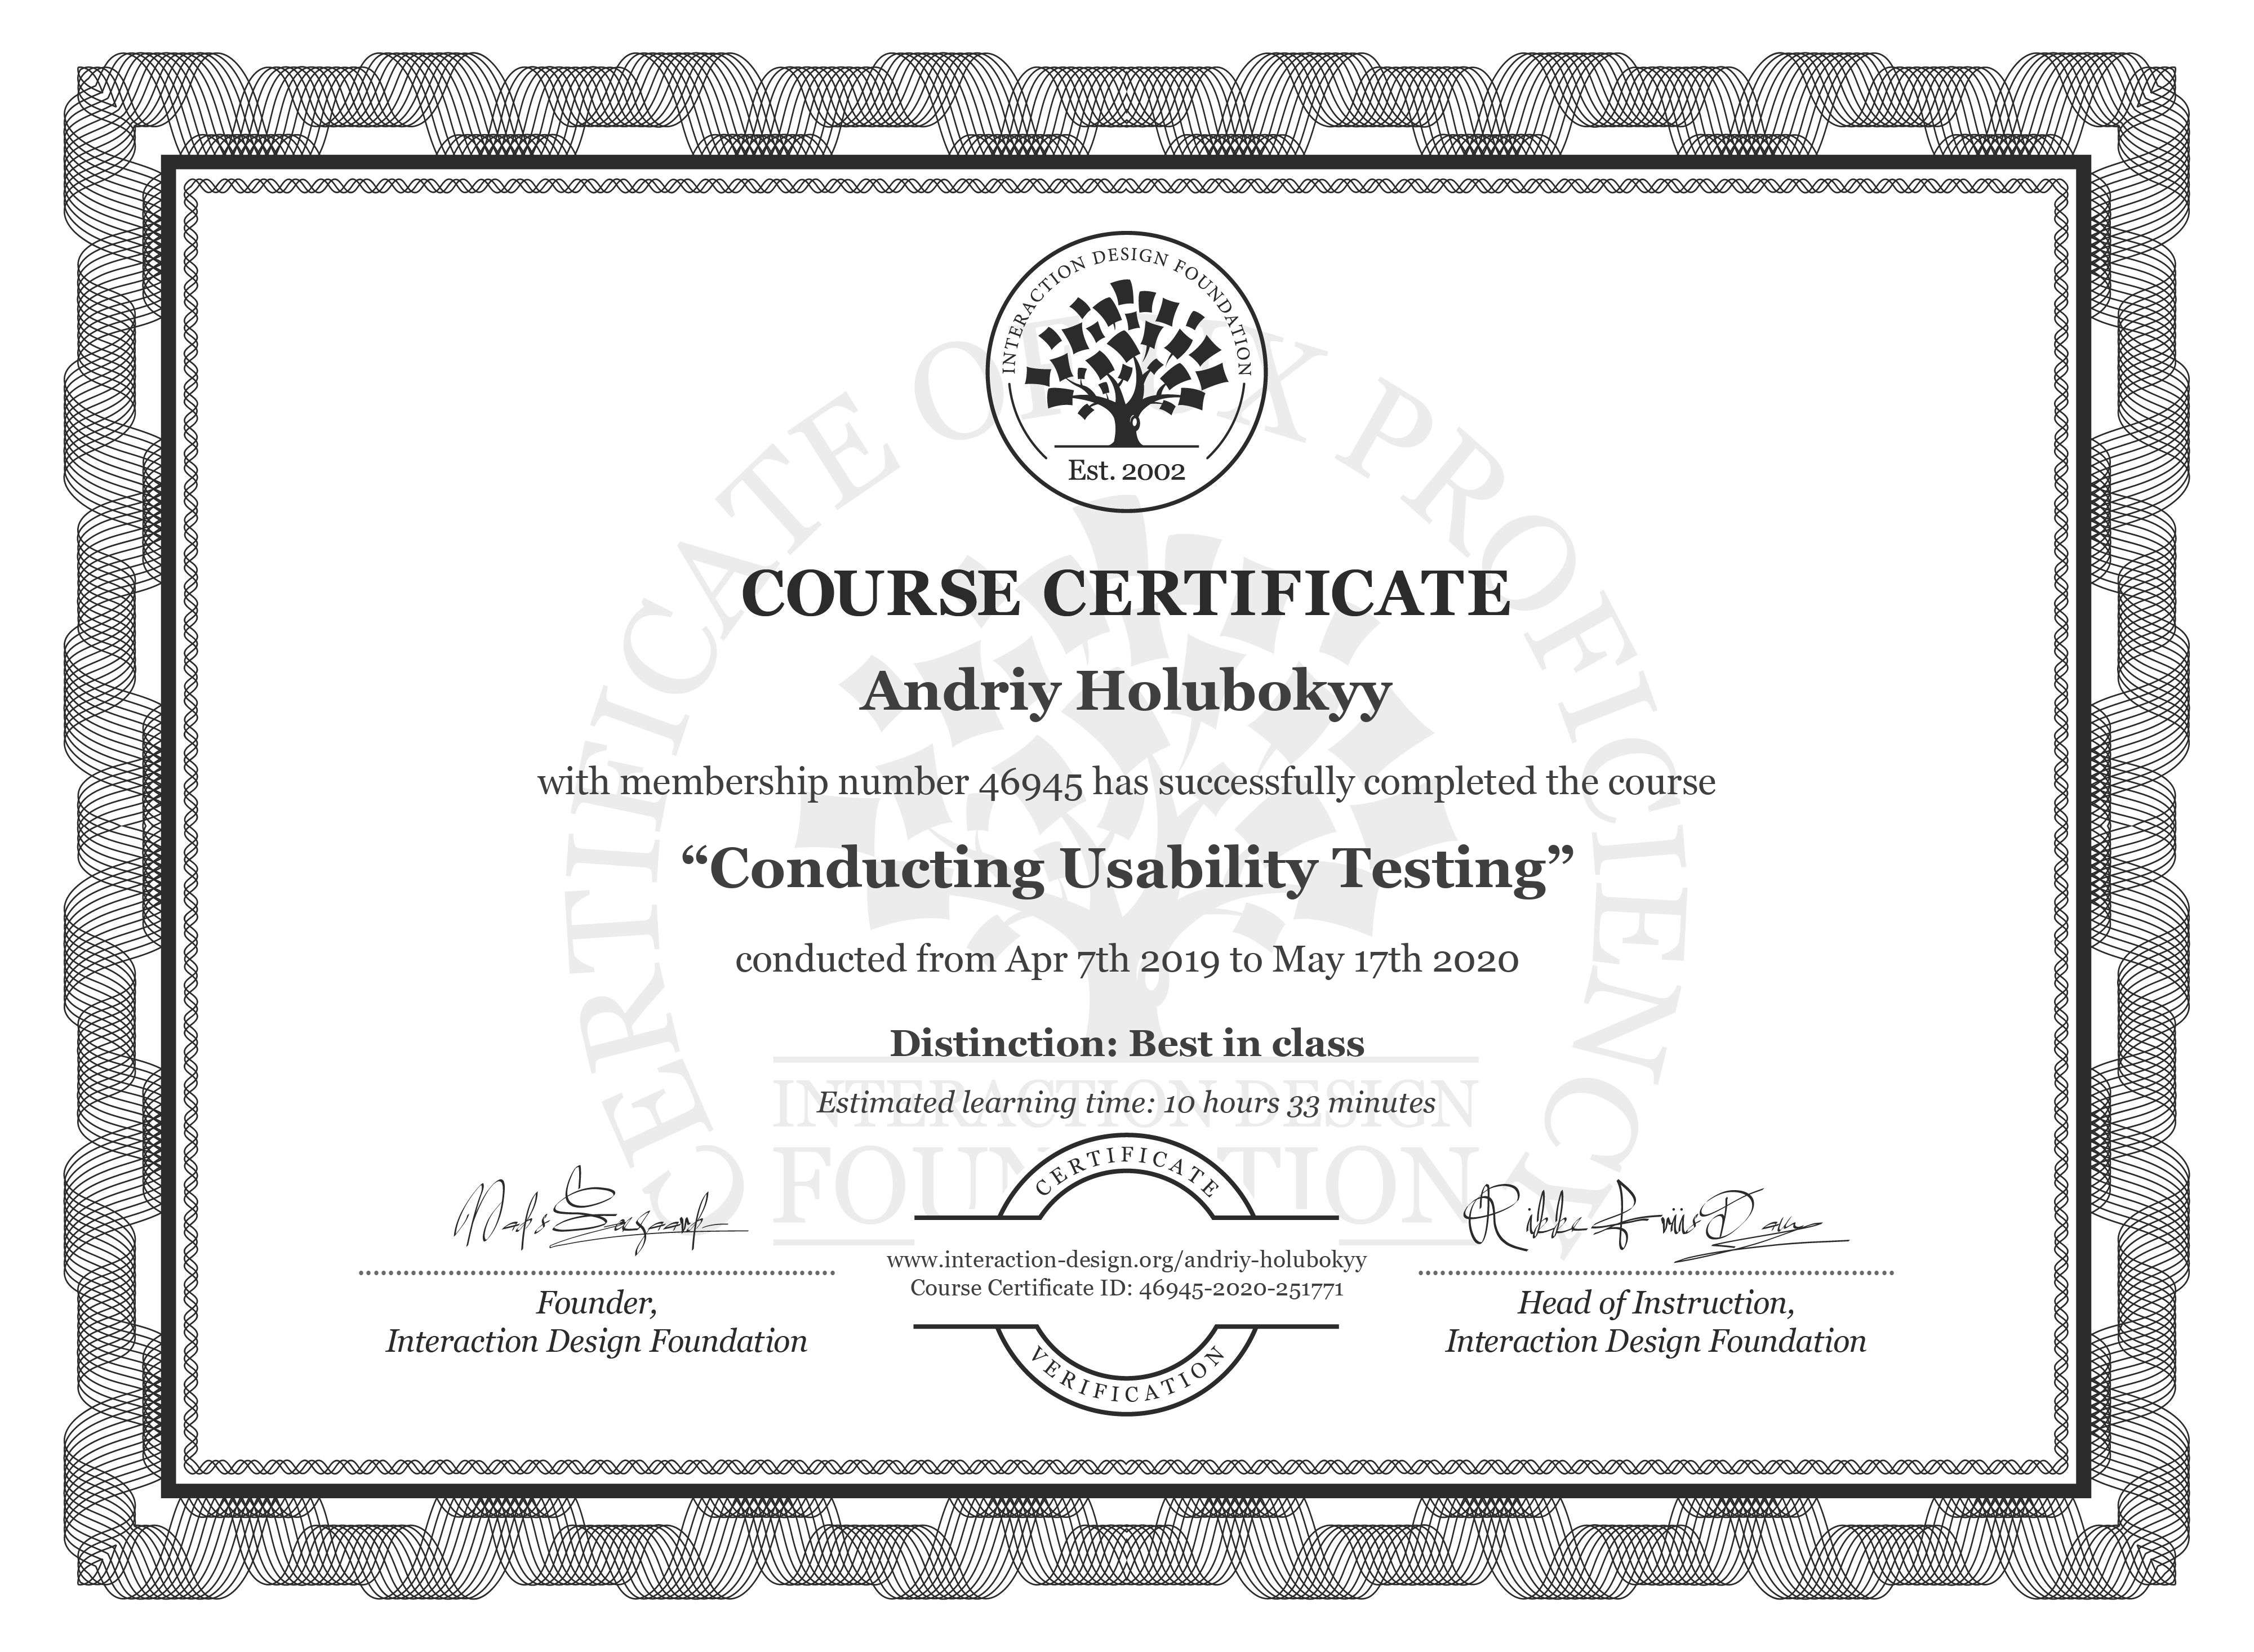 Andriy Holubokyy's Course Certificate: Conducting Usability Testing